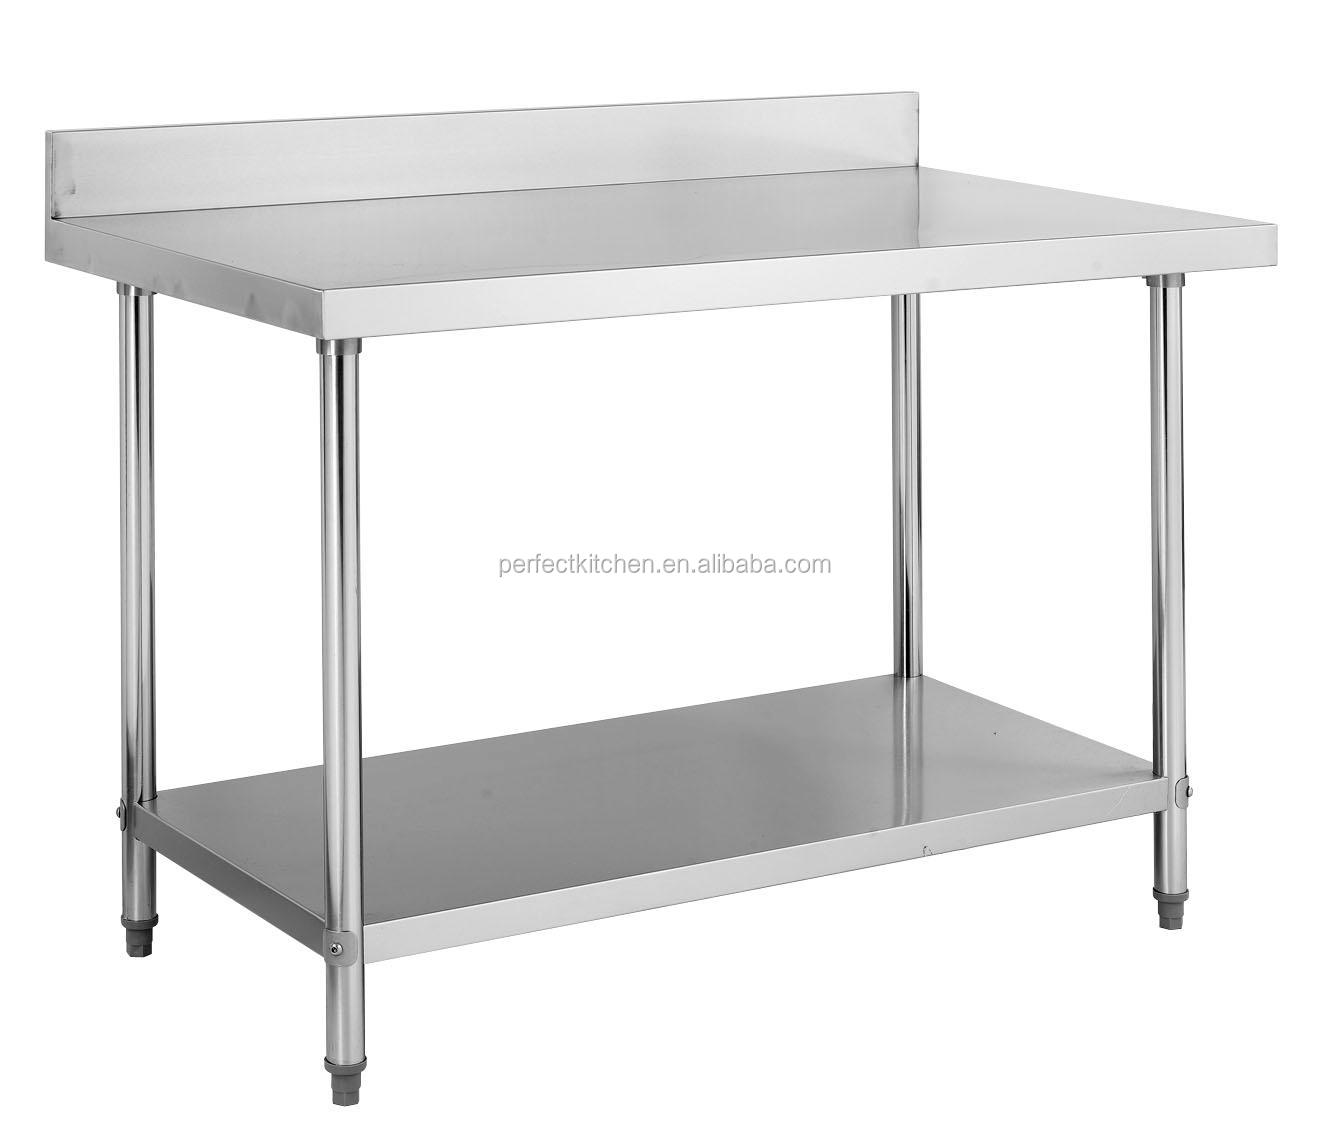 Kitchen work table - Stainless Steel Restaurant Work Bench Stainless Steel Kitchen Work Table